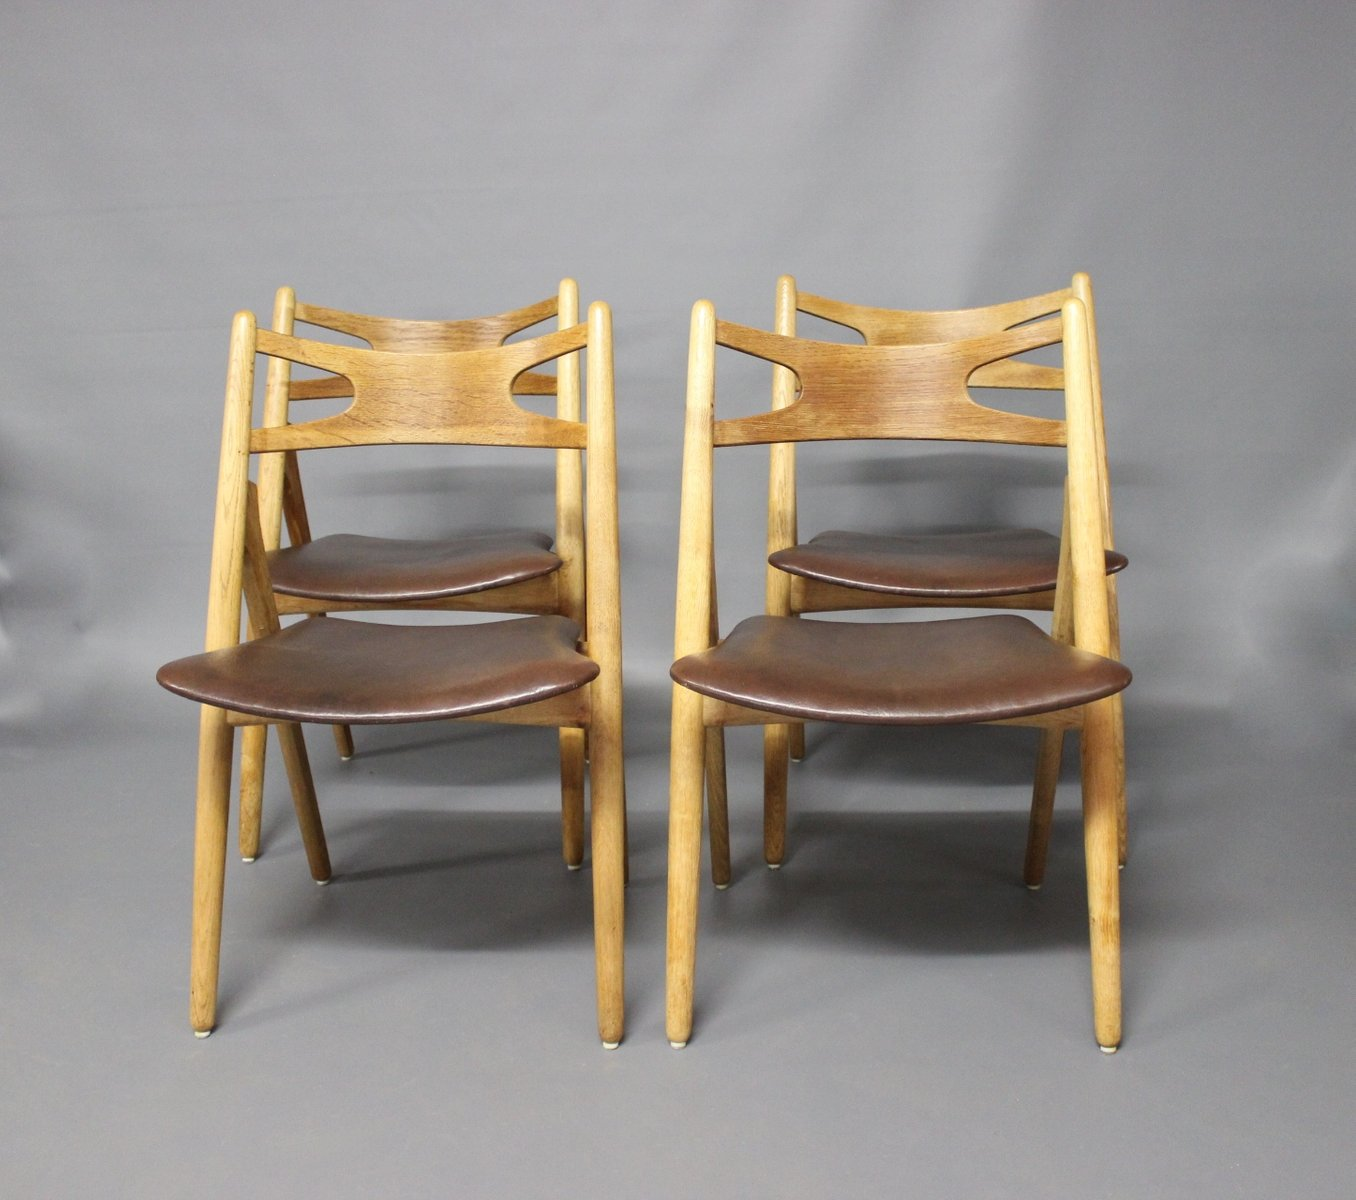 modell ch24 sawbuck st hle von hans j wegner f r carl hansen 1960er 4er set bei pamono kaufen. Black Bedroom Furniture Sets. Home Design Ideas